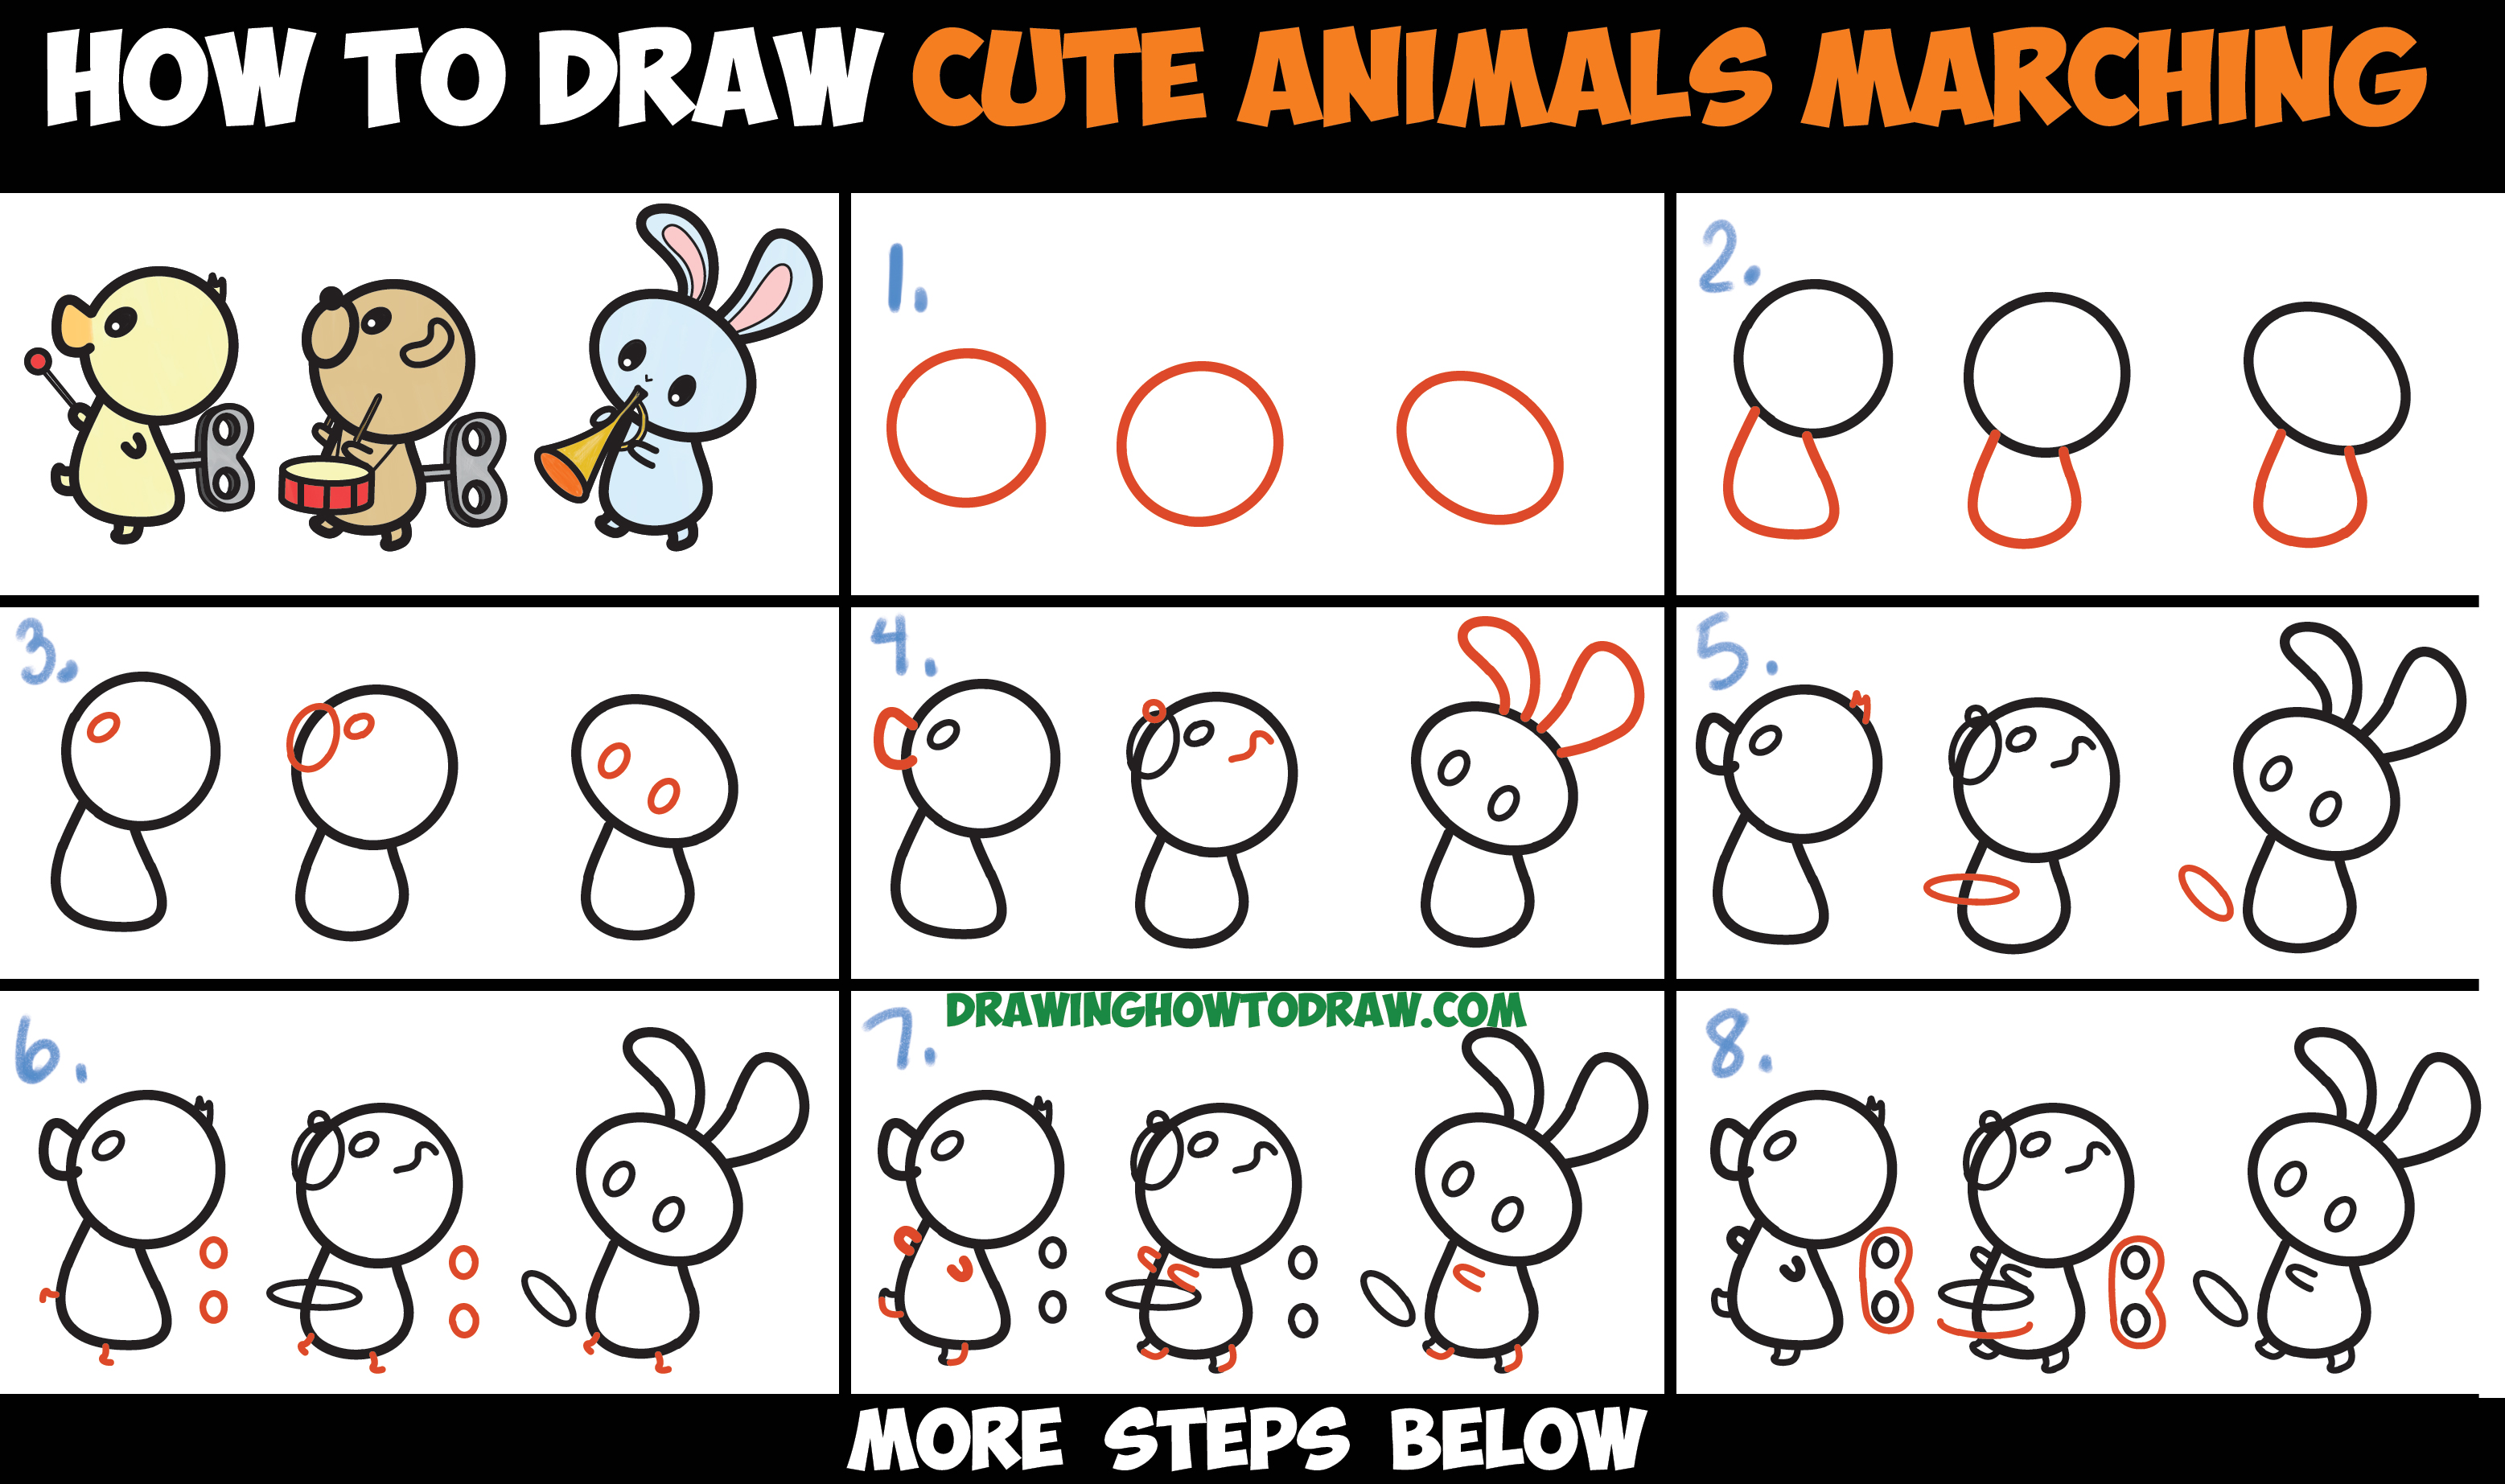 Learn how to draw cute cartoon animals for Learn to draw cartoons step by step lessons